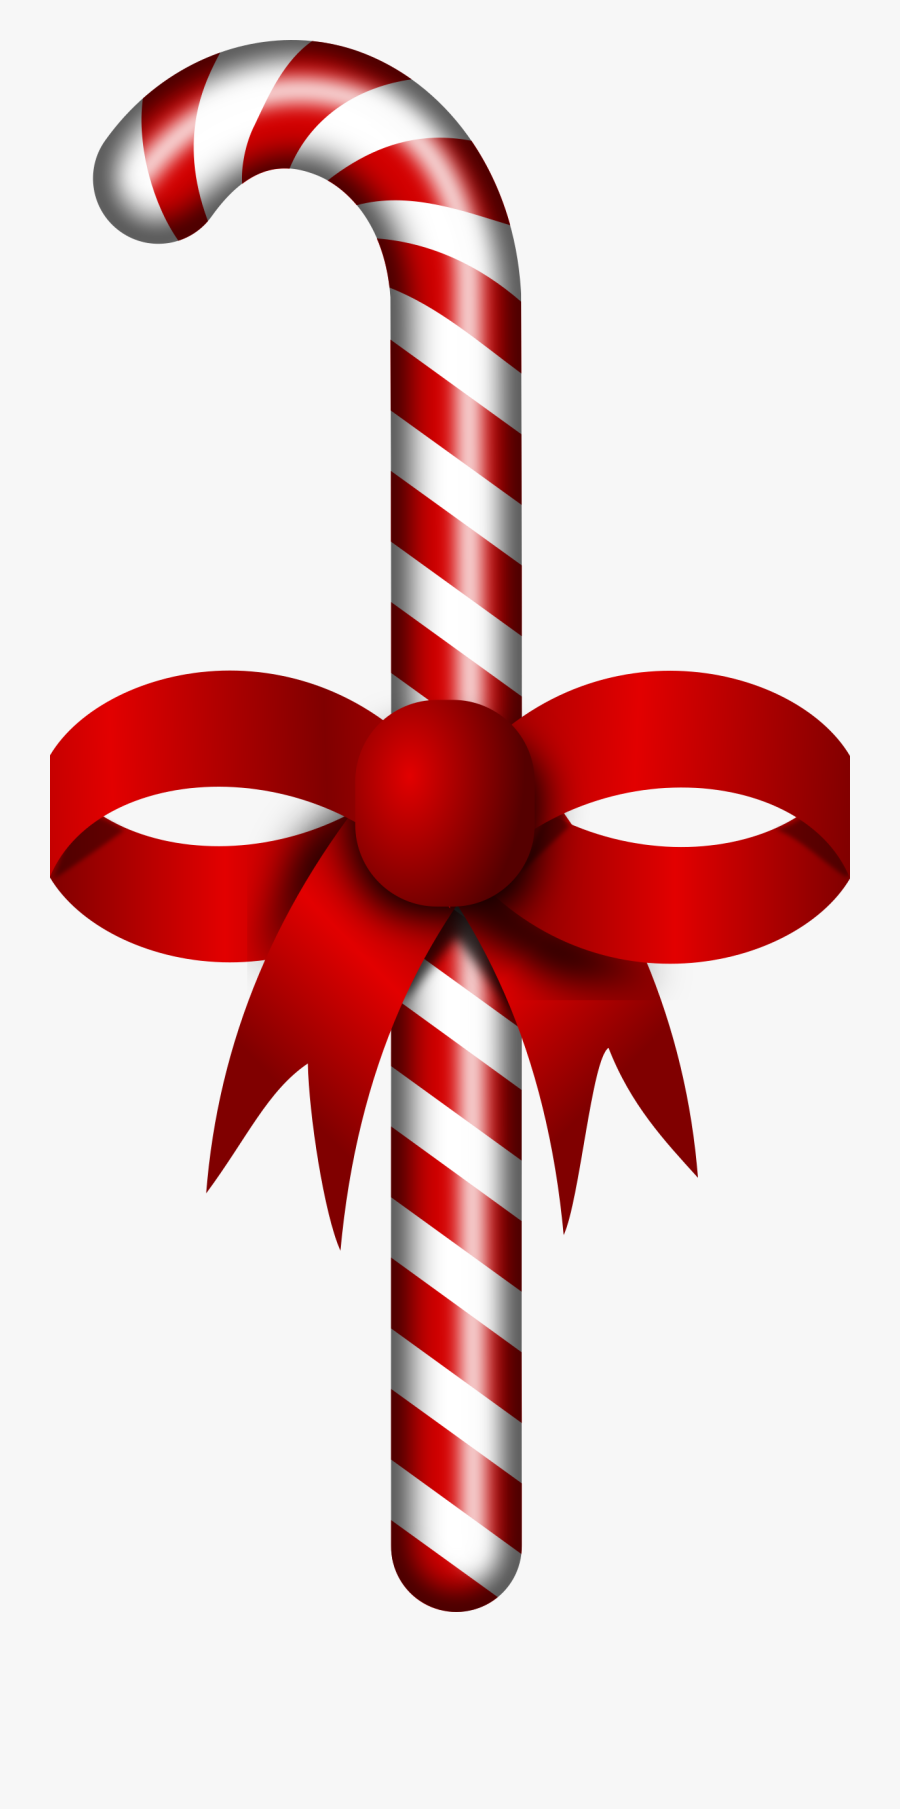 Thumb Image - Santa Claus Candy Stick, Transparent Clipart